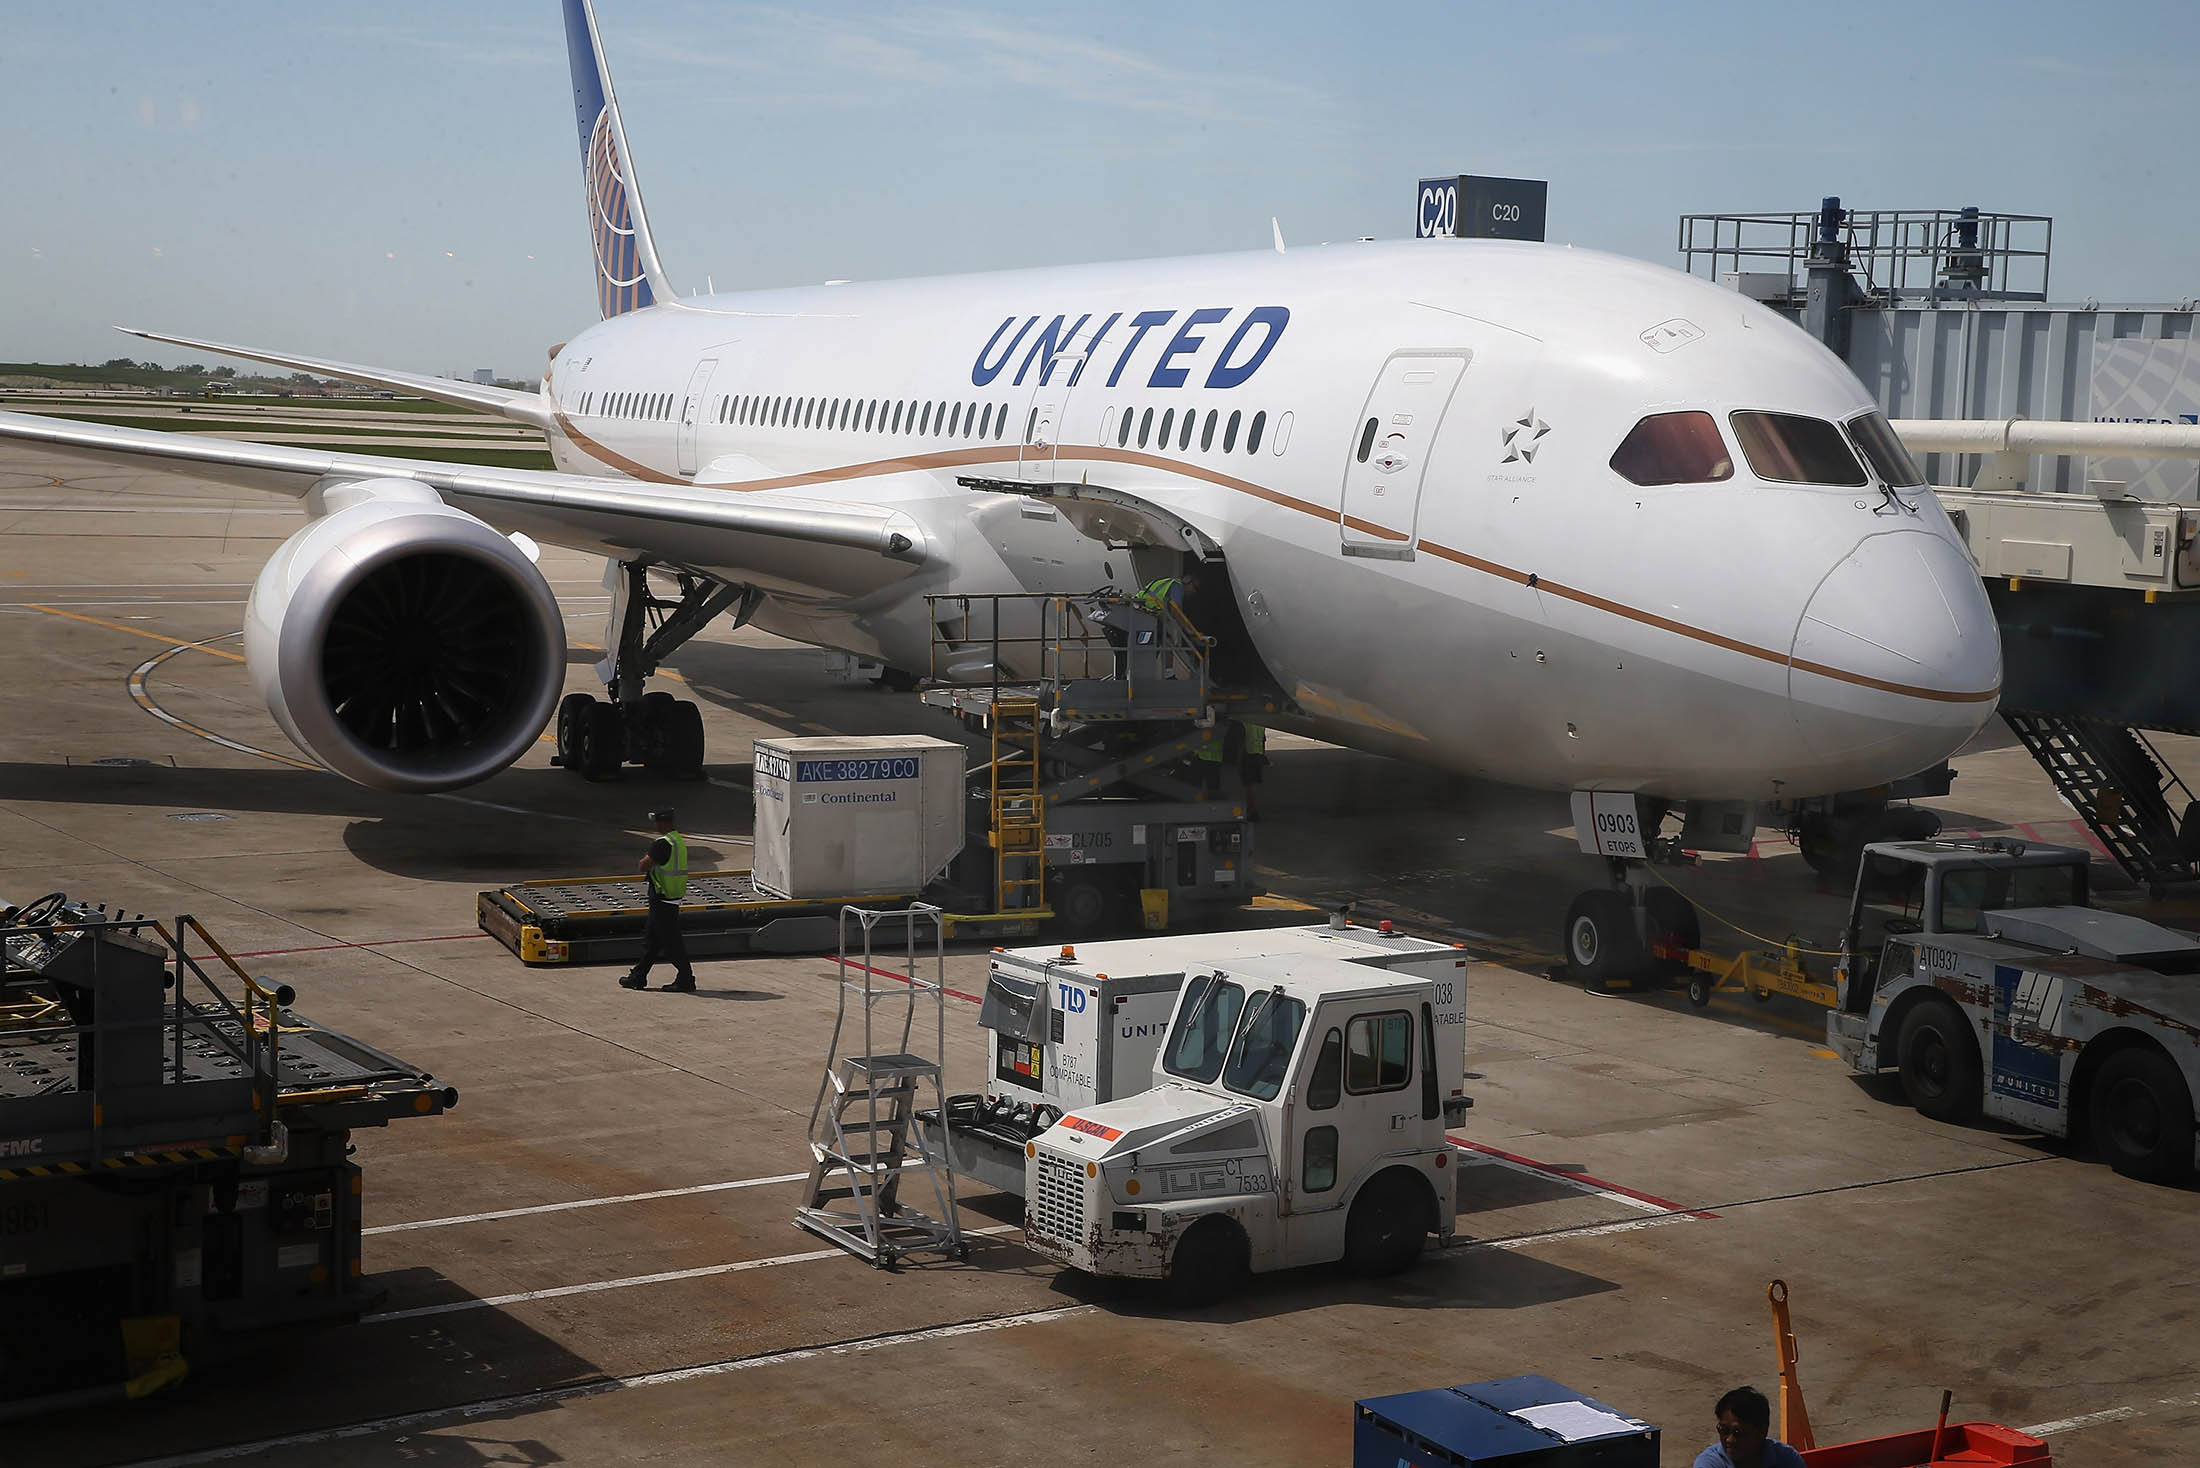 Chicago To Sfo Flights United All The Best Flight In - The 14 longest non stop flights in the world